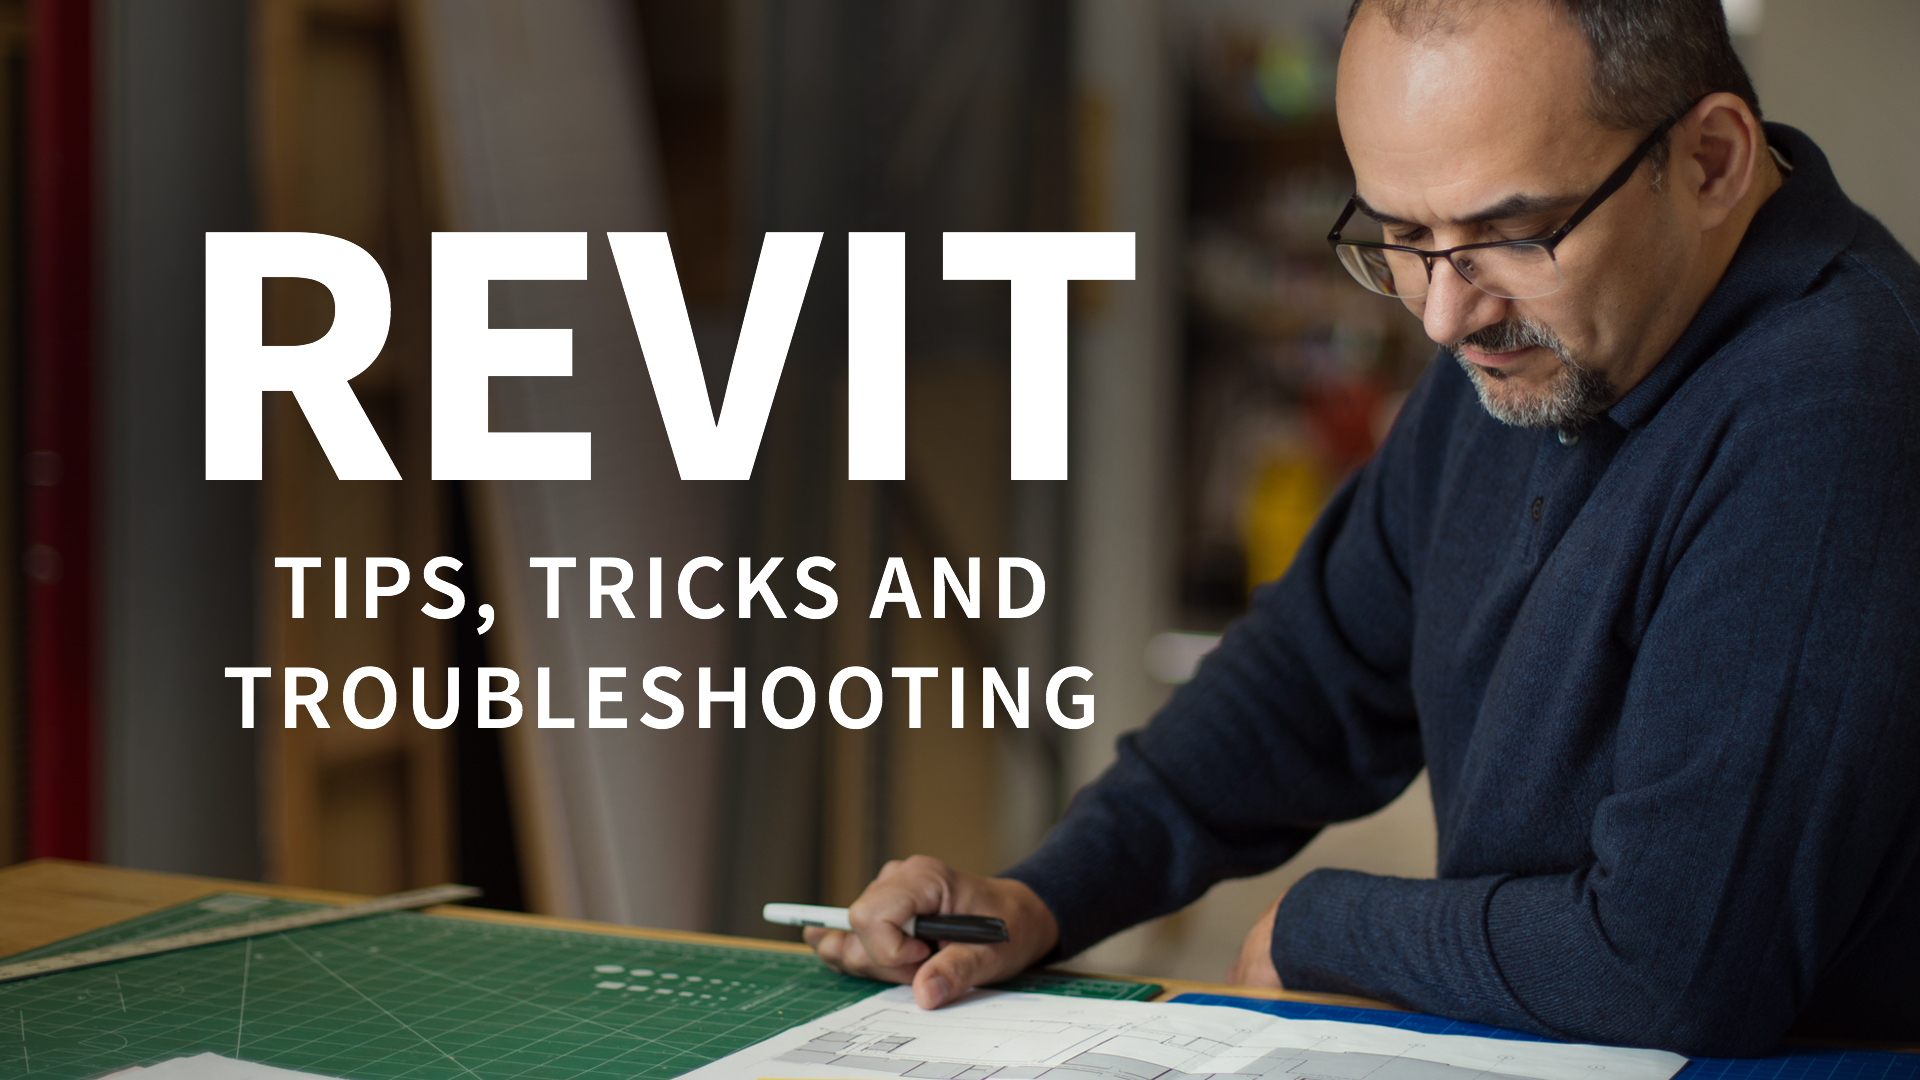 Sheet sorting: Revit: Tips, Tricks, and Troubleshooting